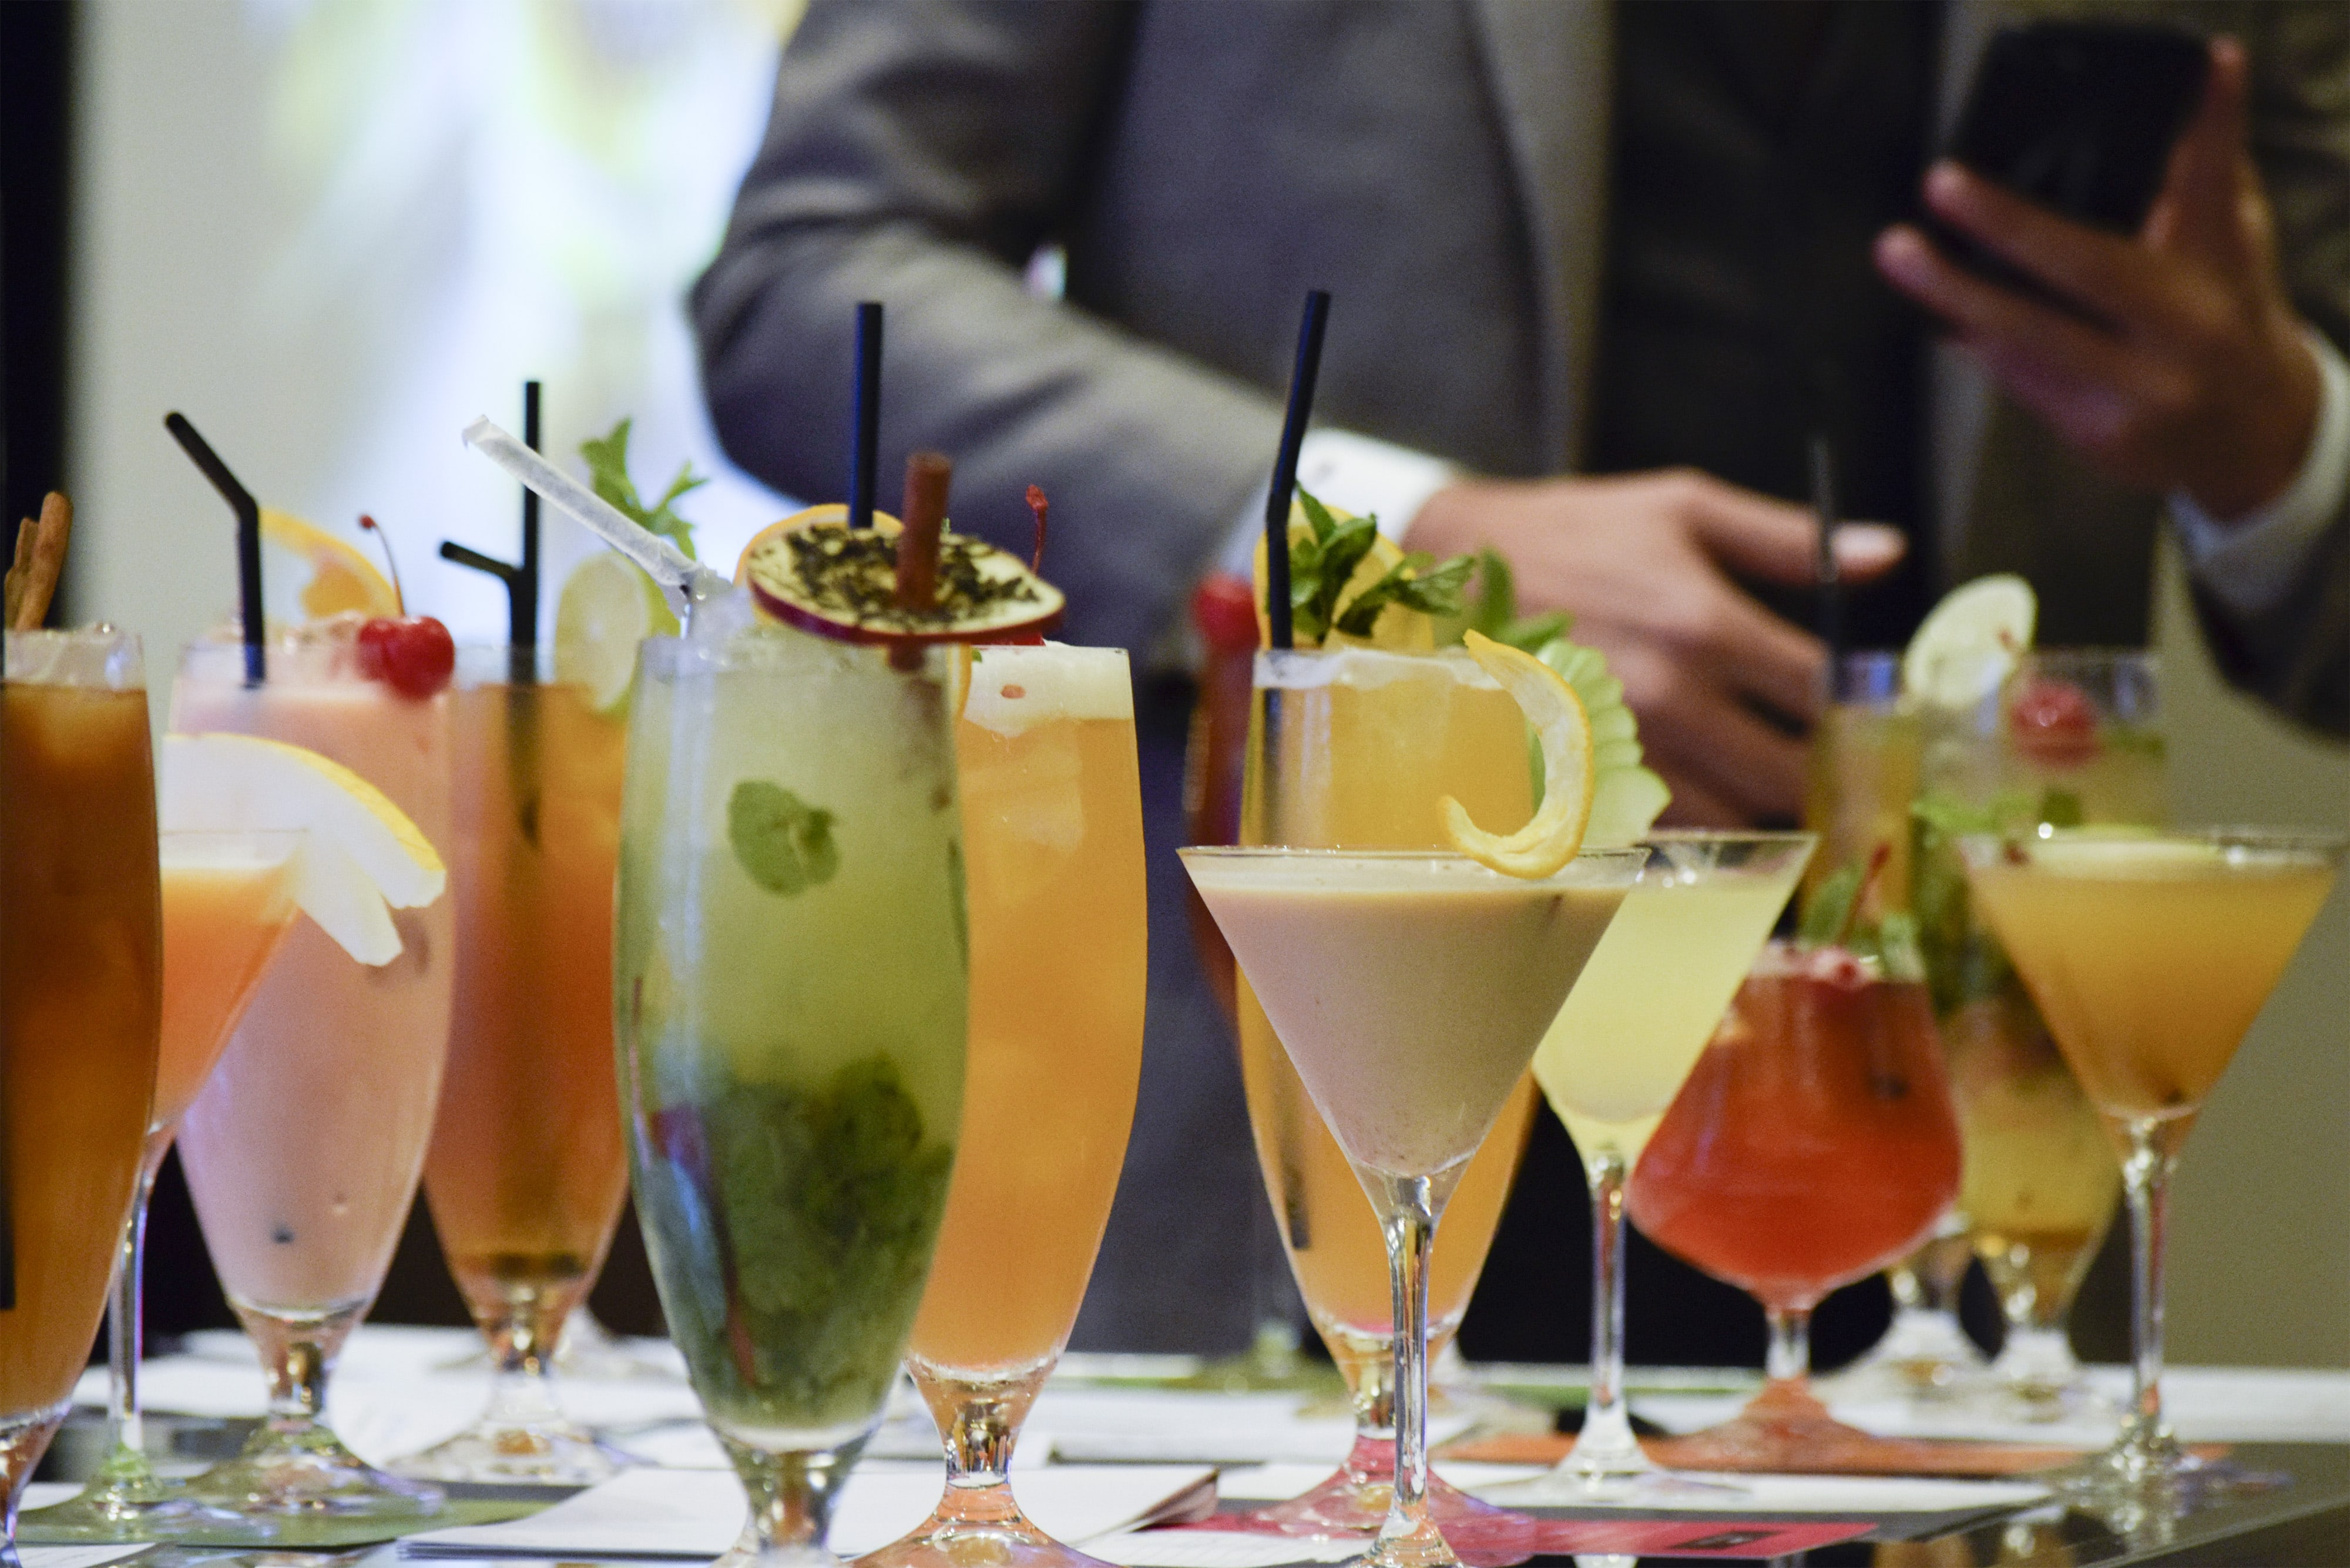 Tea Inspired drinks created by the participants